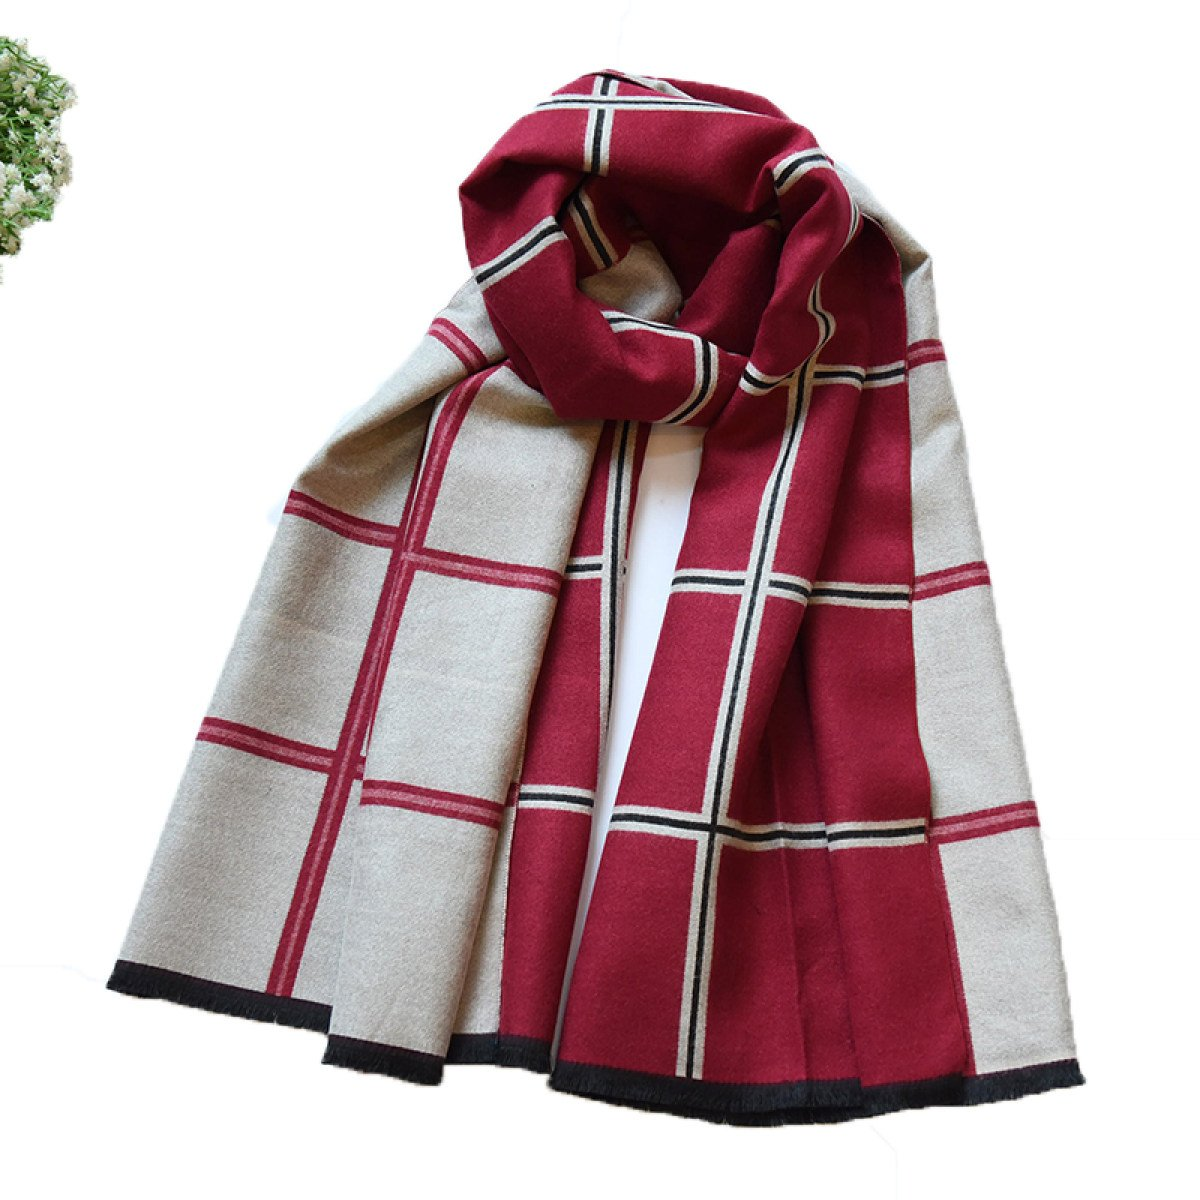 B CCAILIS Men And Women Autumn And Winter England Double Sided Lattice Fashion Scarf Thicker Shawl Warm Long Out,AOneSize